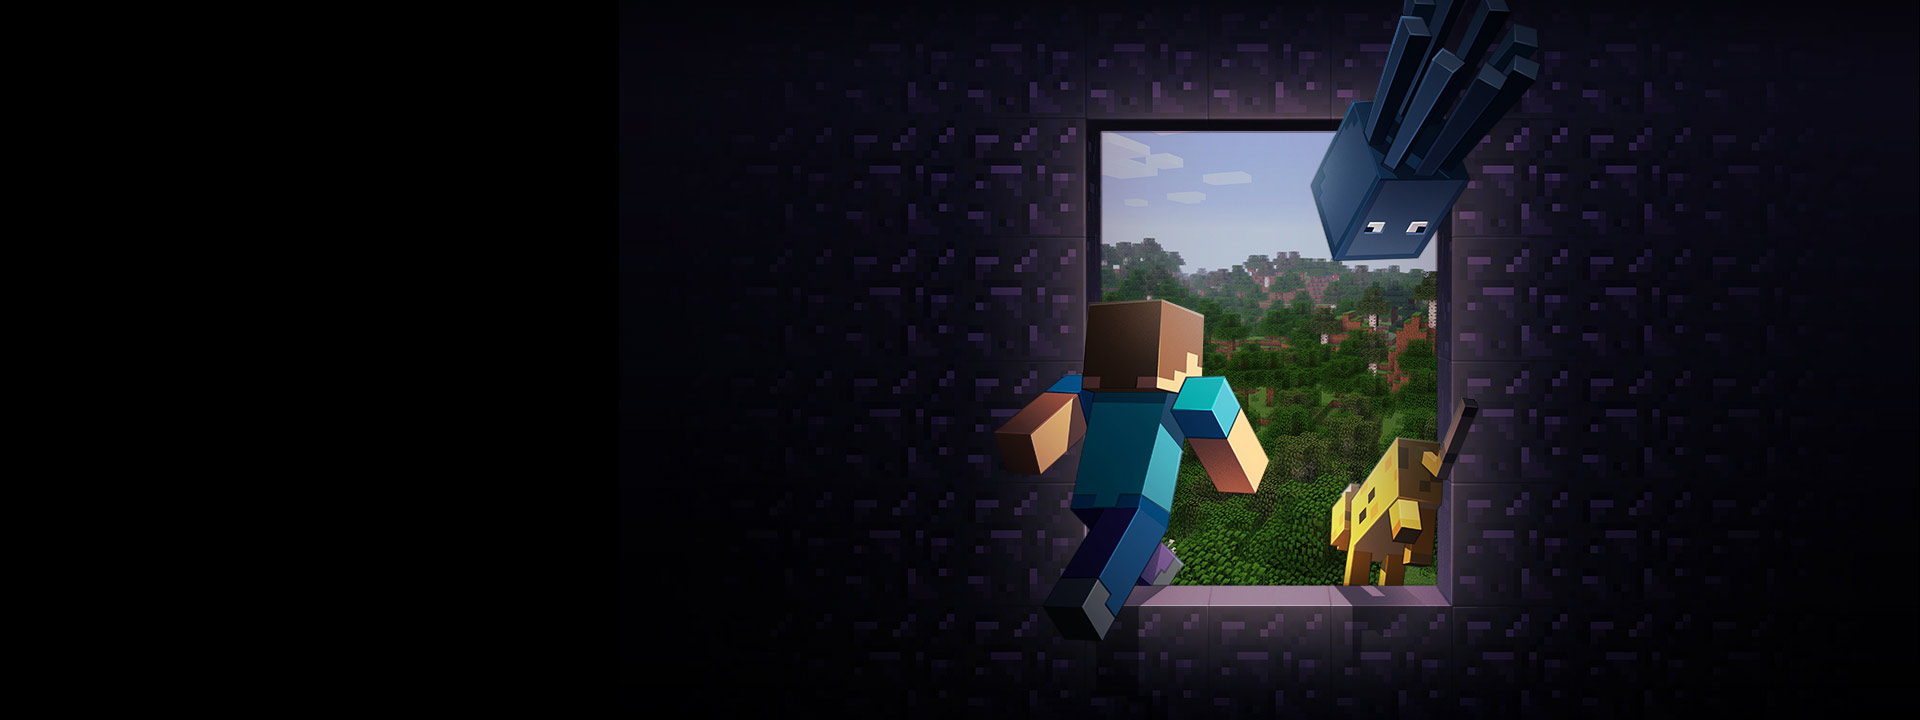 Minecraft Player going through a window to the Minecraft world